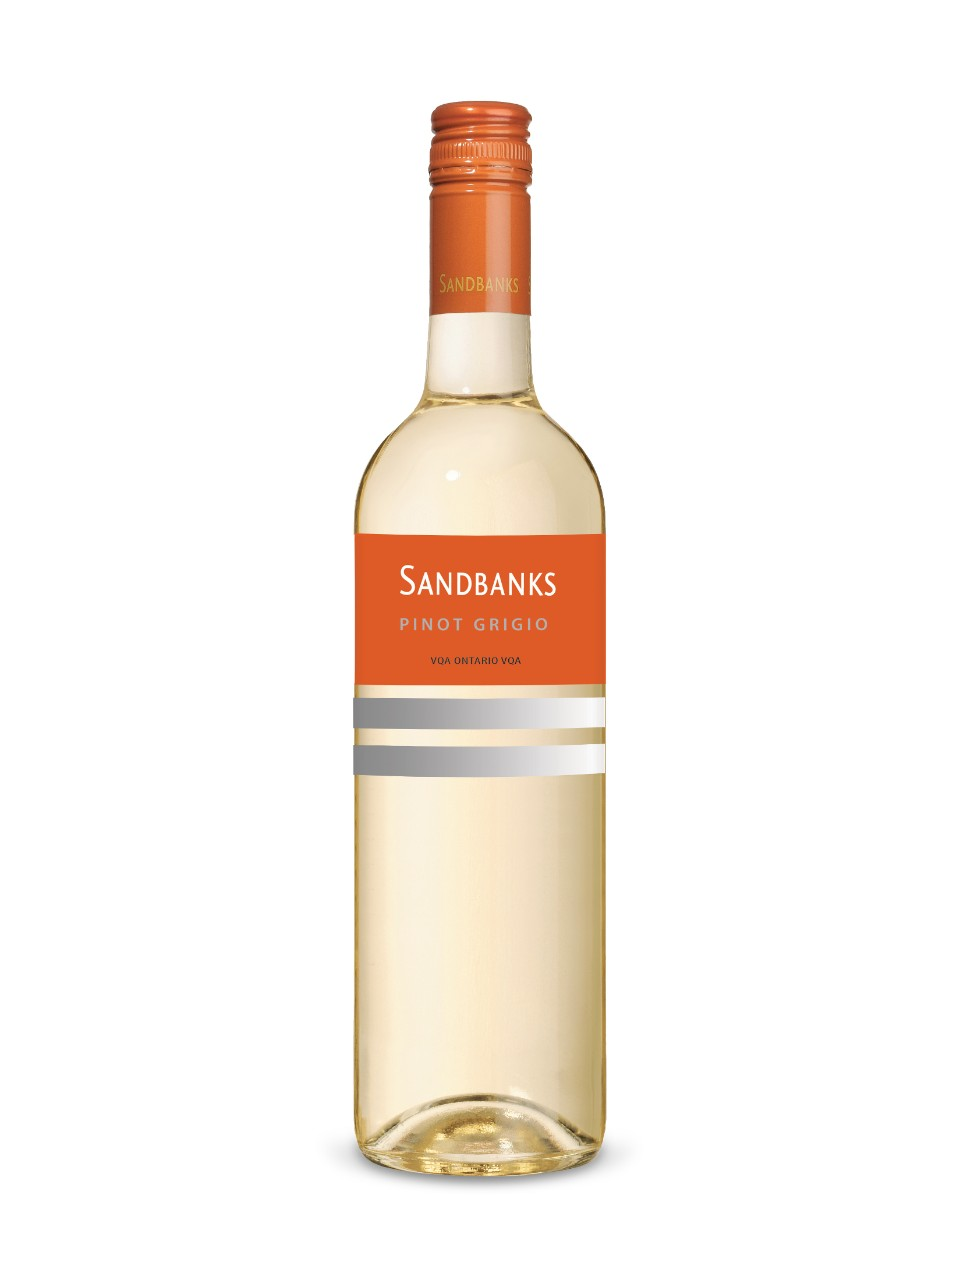 Image for Sandbanks Pinot Grigio VQA from LCBO